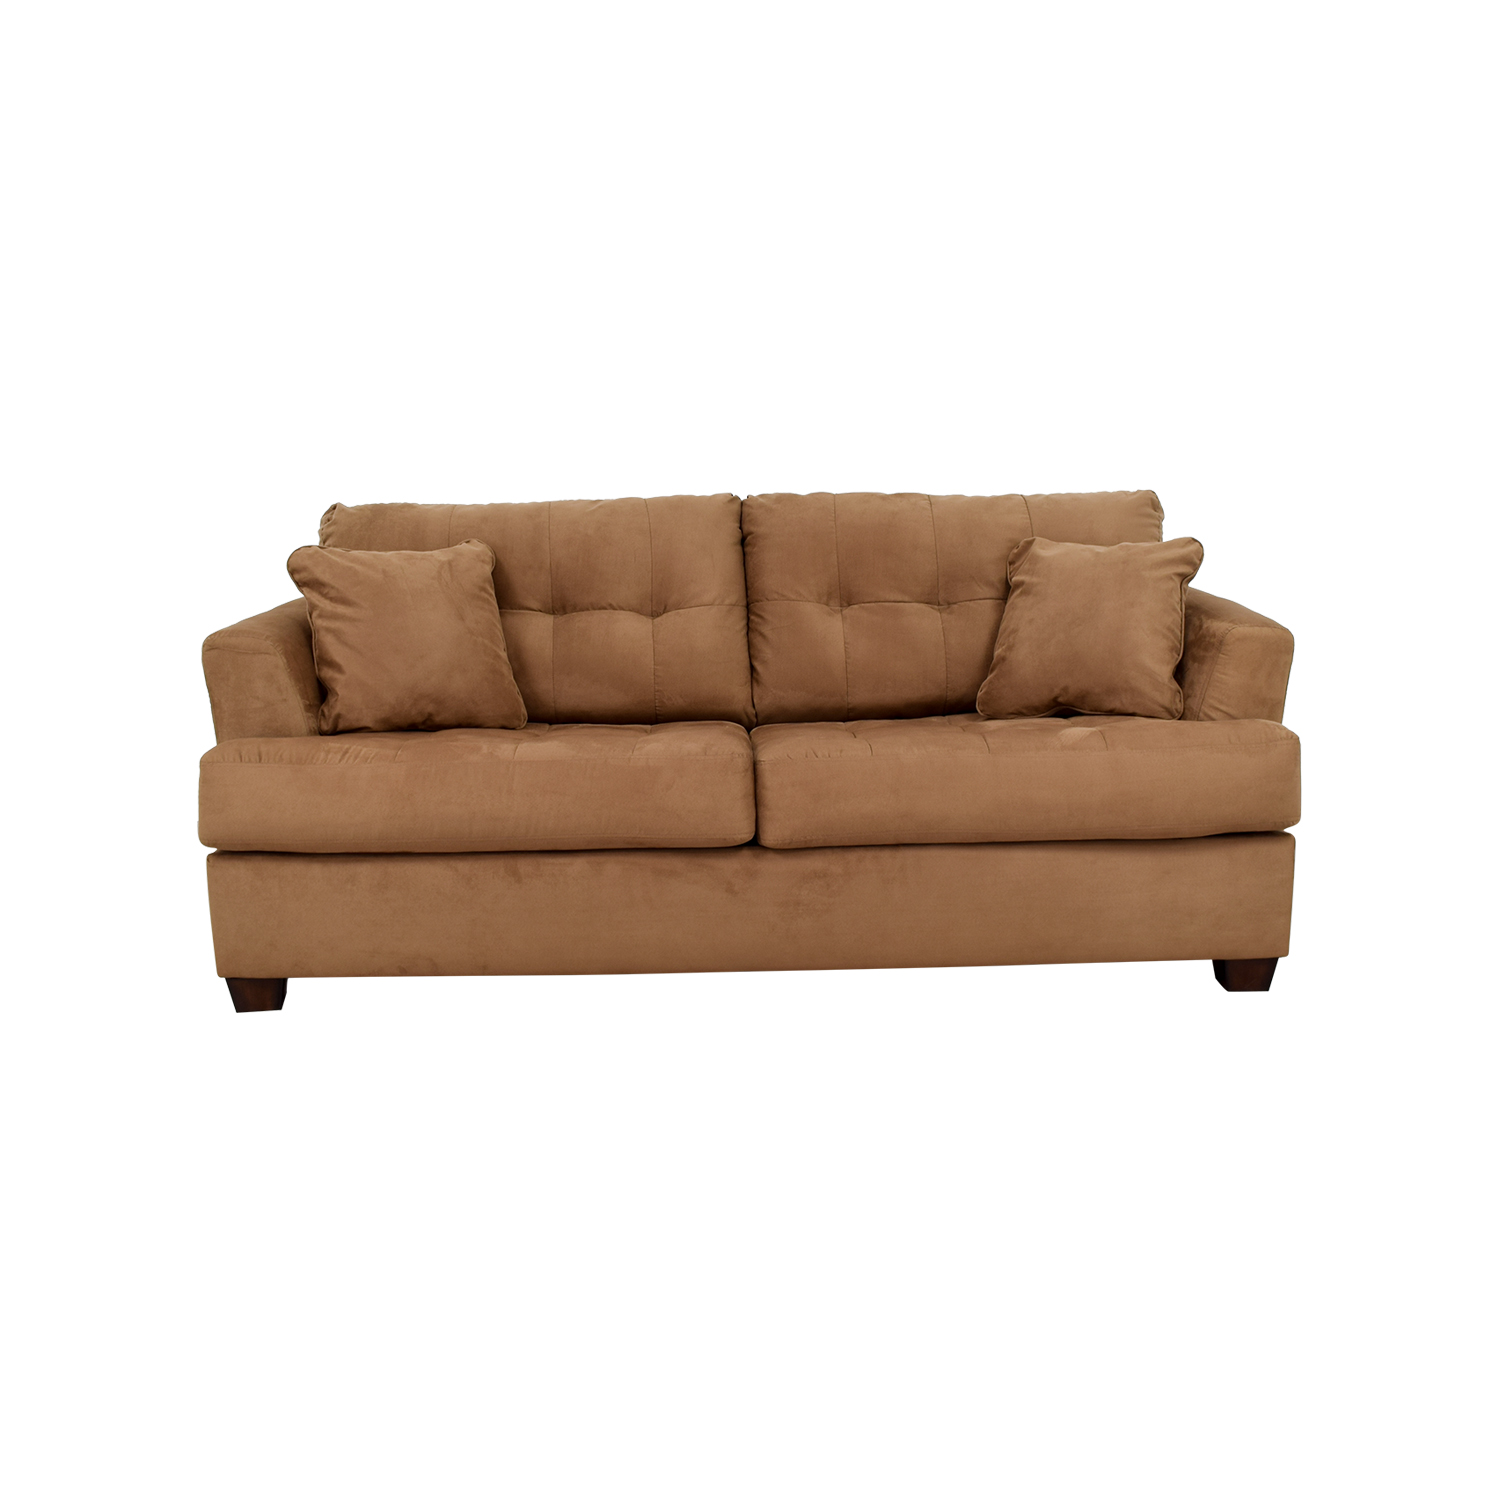 ashley convertible sofa sofas fabulous ashley furniture With convertible sofa bed ashley furniture